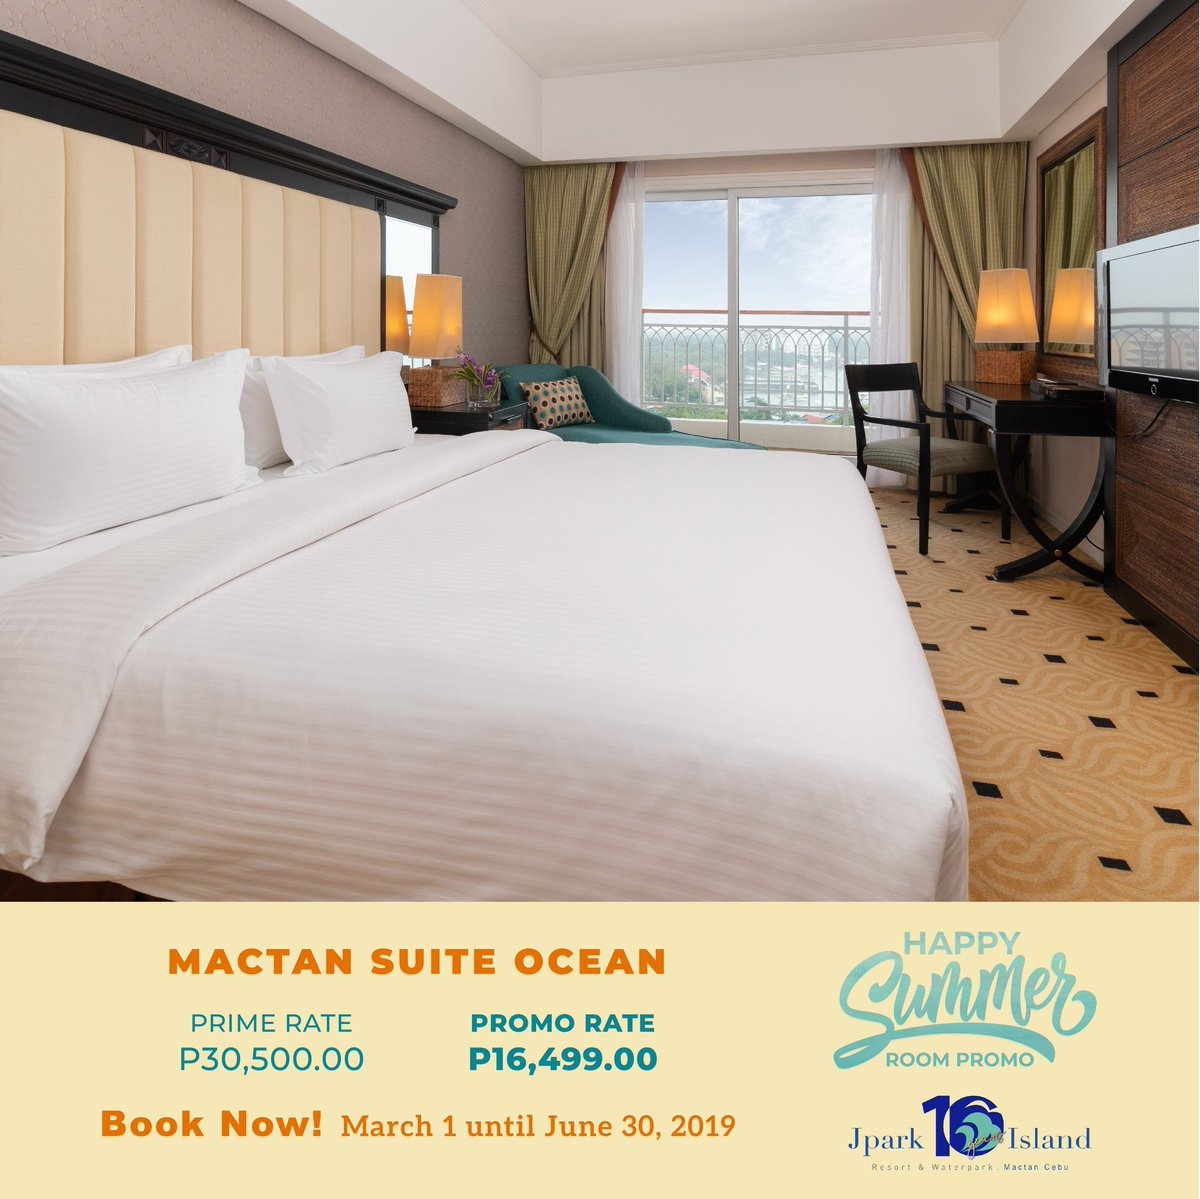 Want to wake up to a lovely view of the ocean? The Mactan Suite Ocean is the right pick! Book it!  Avail our discounted rates by using the promo code SUMMER!  View more details here: https://t.co/atg2VLnEHd  #MyJparkStory #WaterYouWaitingFor  #TenYearsOfJpark https://t.co/QCsGNPag2V